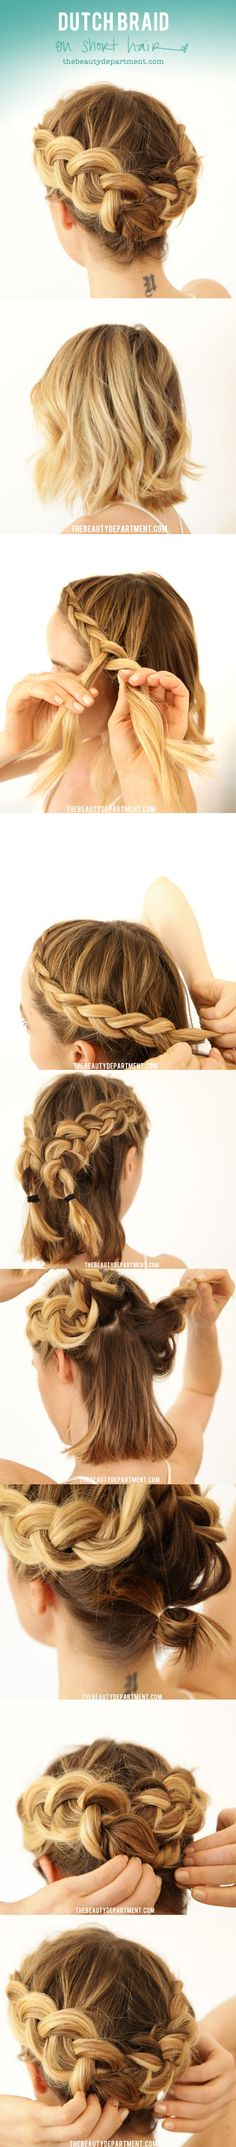 TBD - Short #Hair #Braid